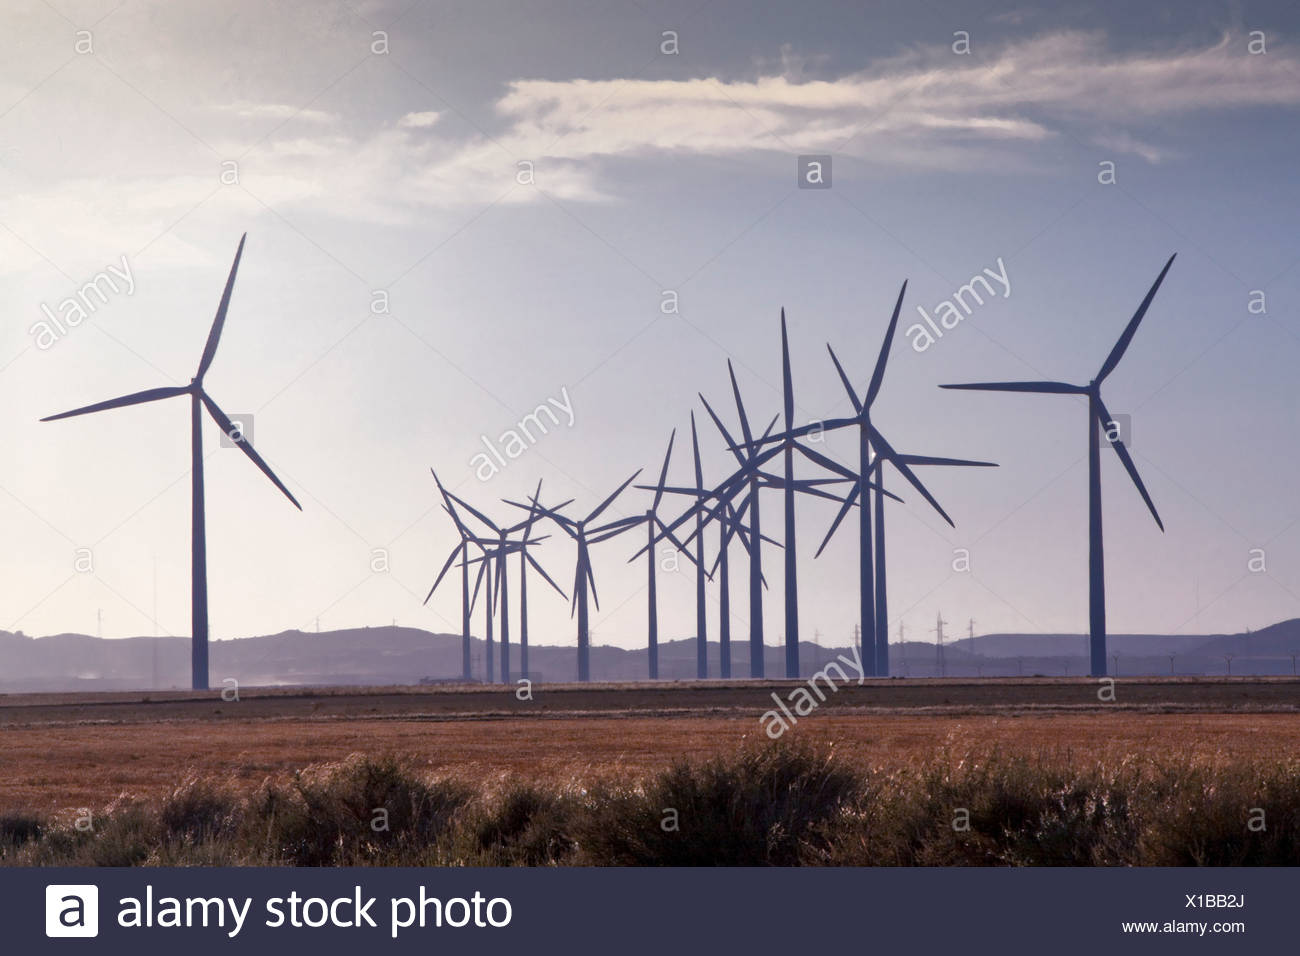 Spain, Europe, Aragon, wind farm, wind energy, wind turbine, energy, with Belchite, ecological - Stock Image